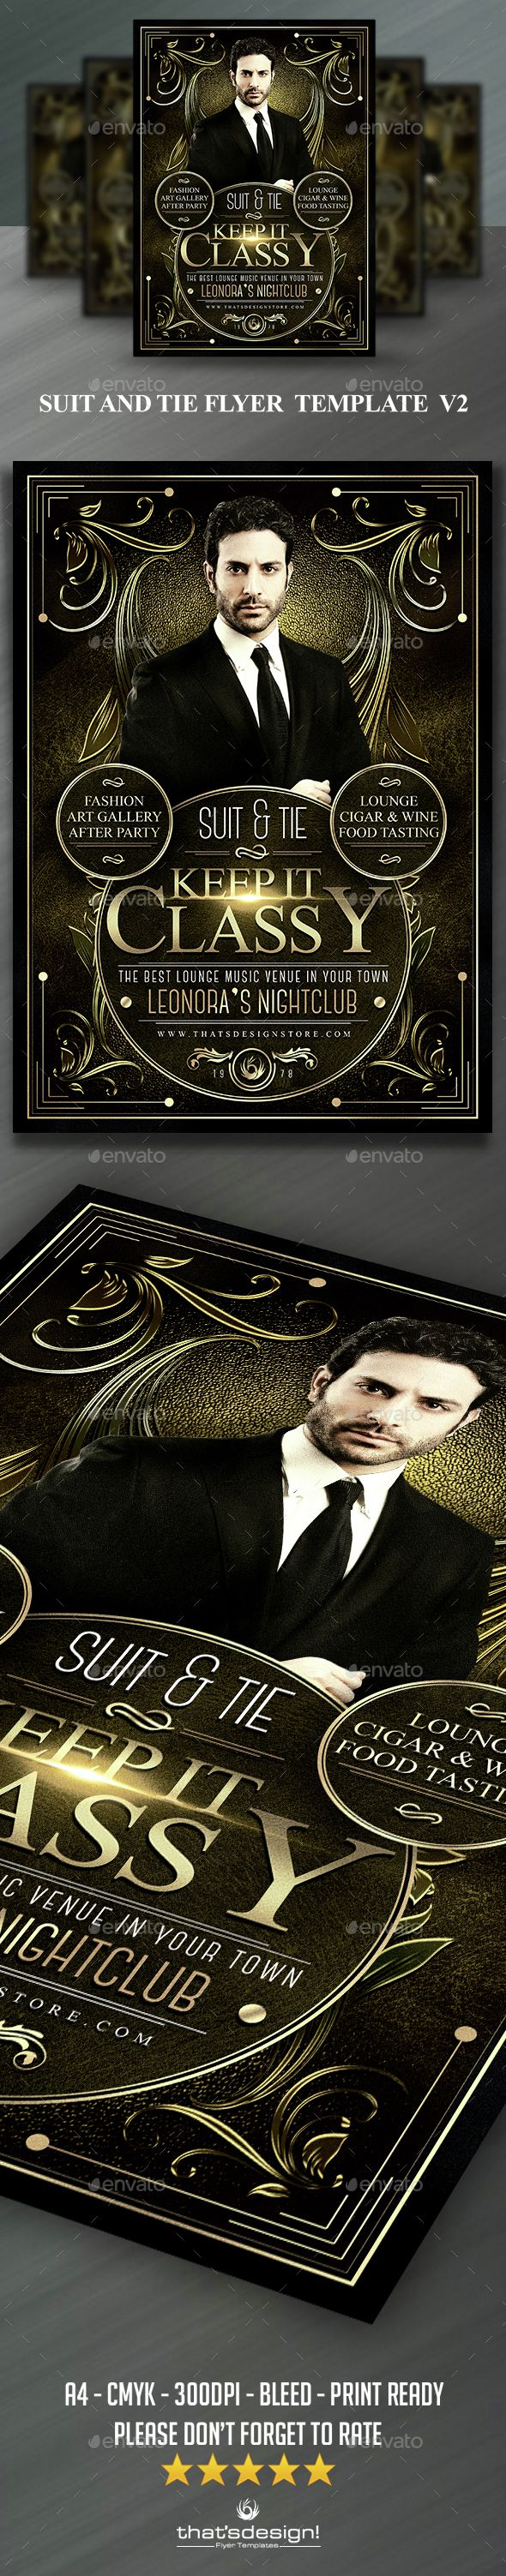 Download Free Graphicriver              Suit and Tie Flyer Template V2            #art #black #Charlestone #chic #cigar #classy #clean #club #deco #dj #elegant #flyer #Gasby #gold #golden #leaflet #leather #lou606 #lounge #nightclub #party #poster #psd #retro #suit #template #thatsdesign #tie #tuxedo #whiskey